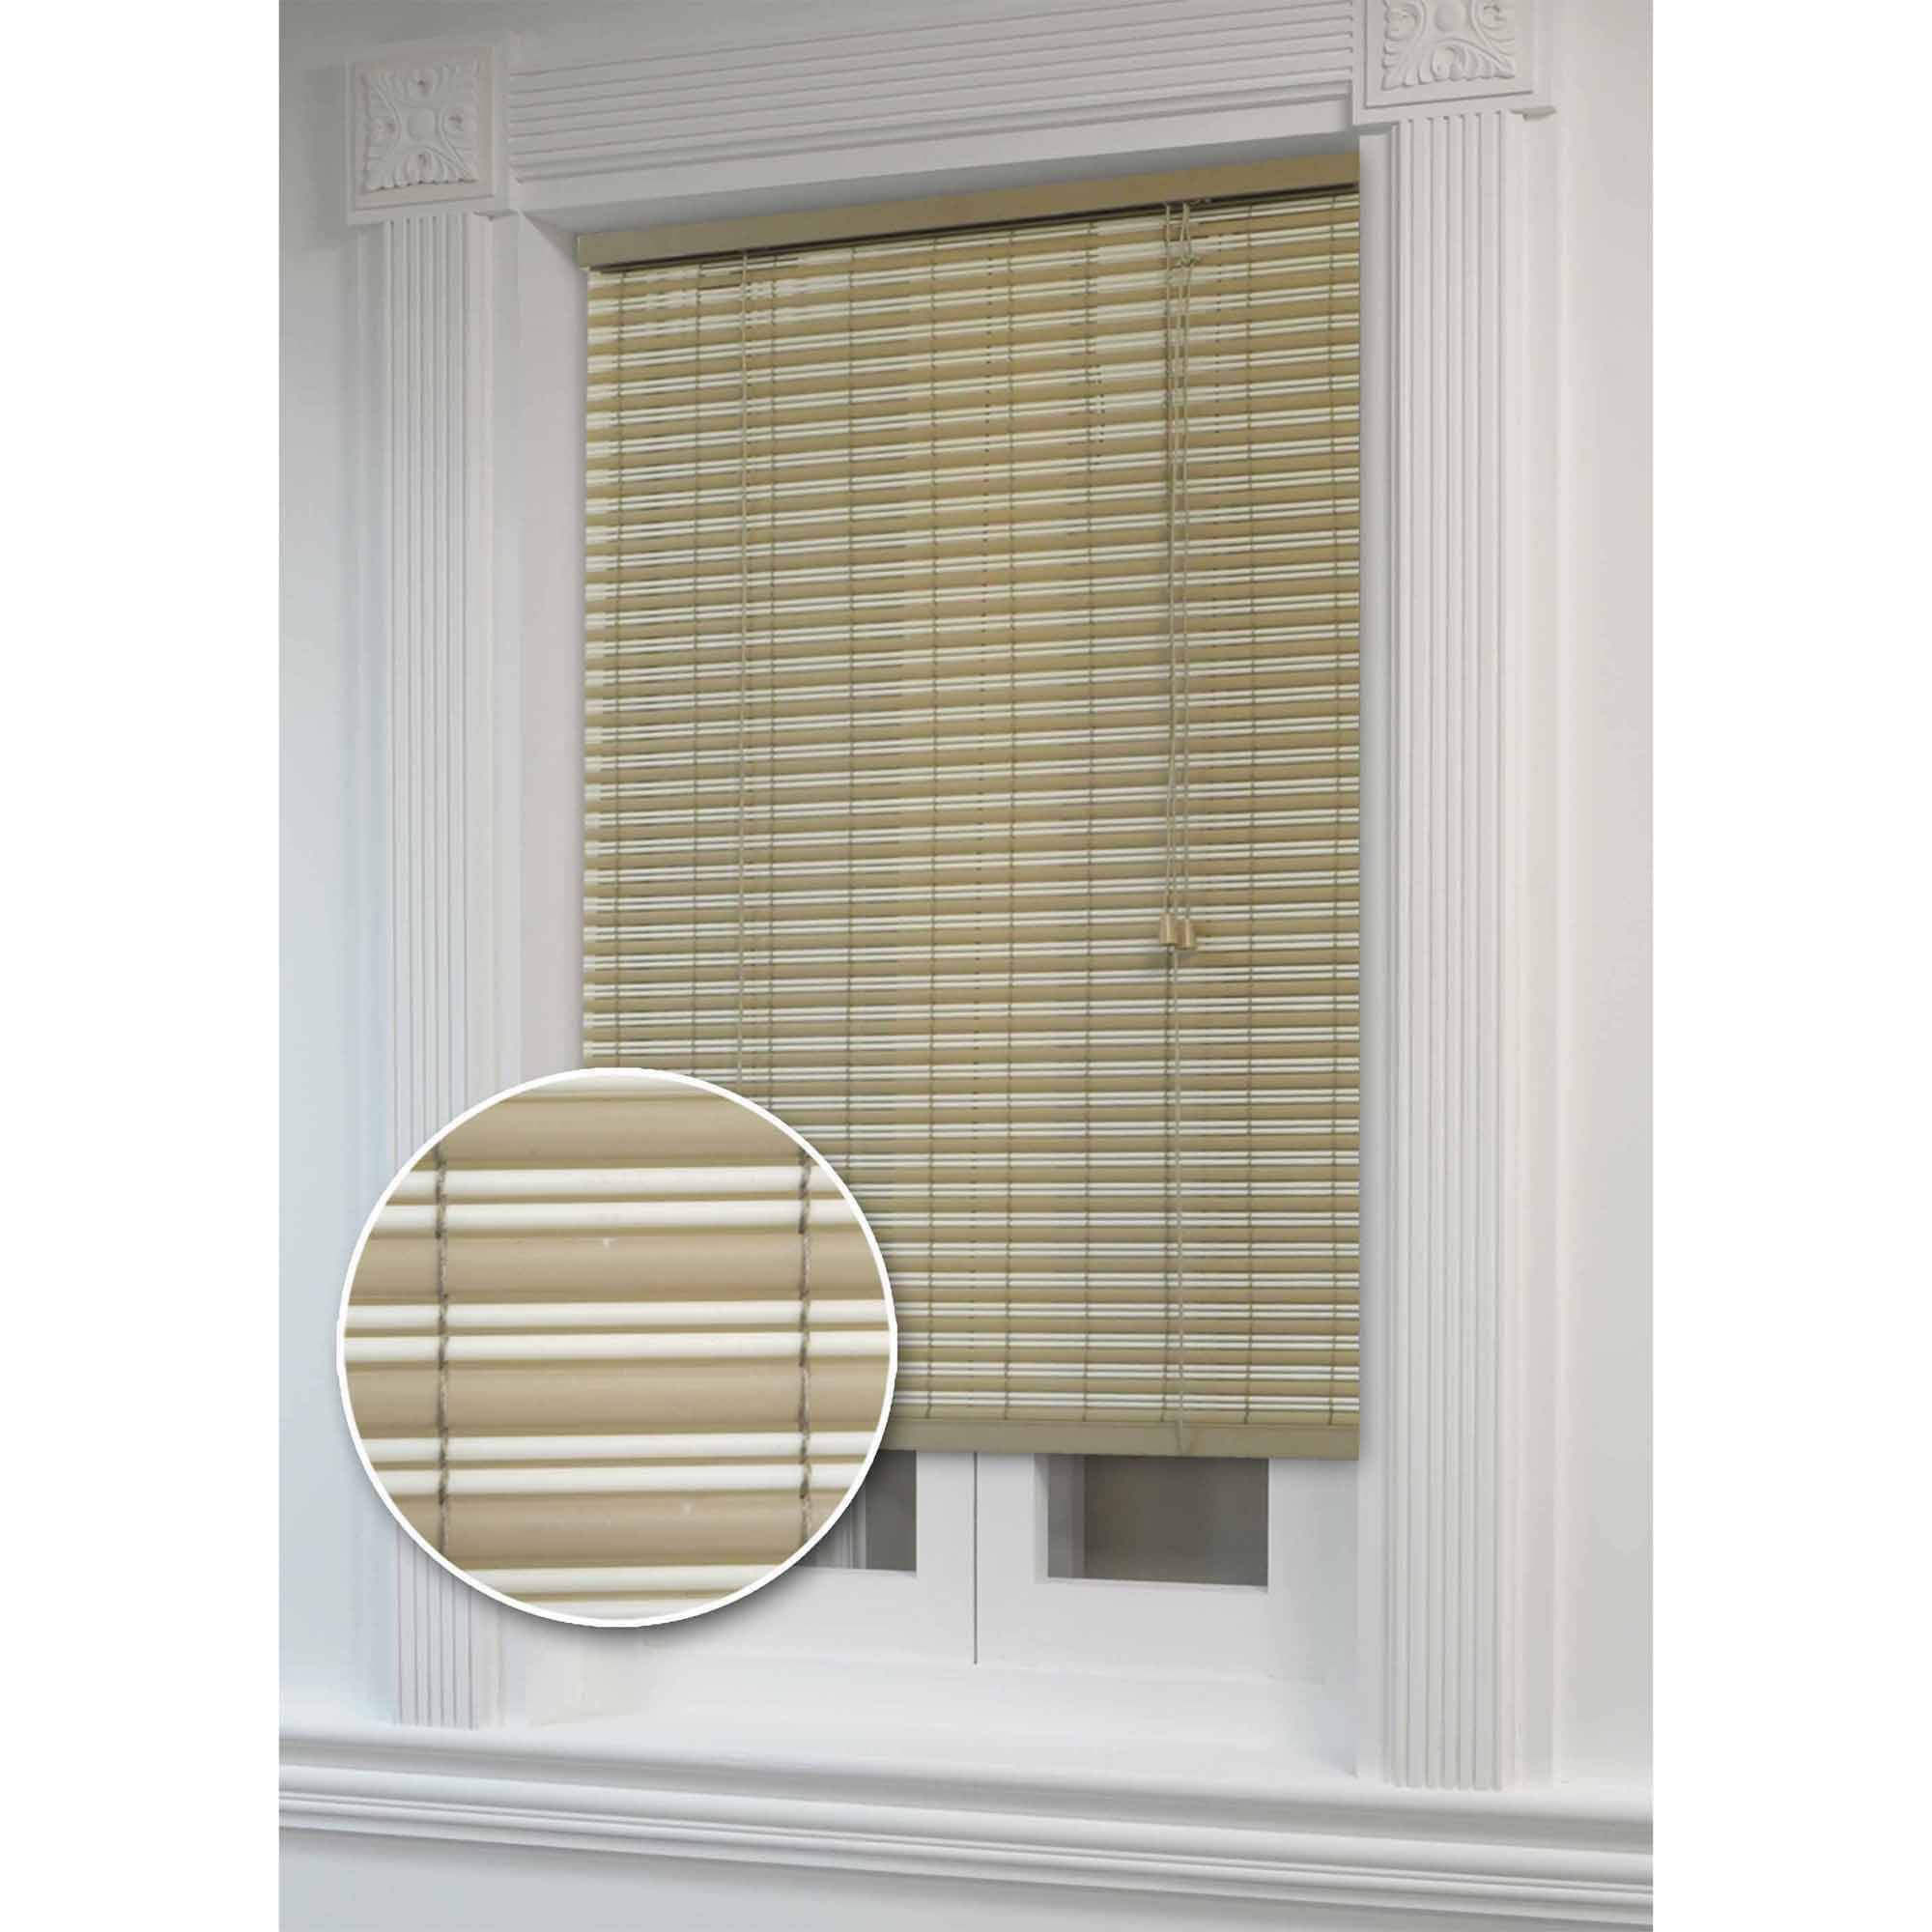 How To Clean Vinyl Patio Blinds Patio Design Ideas